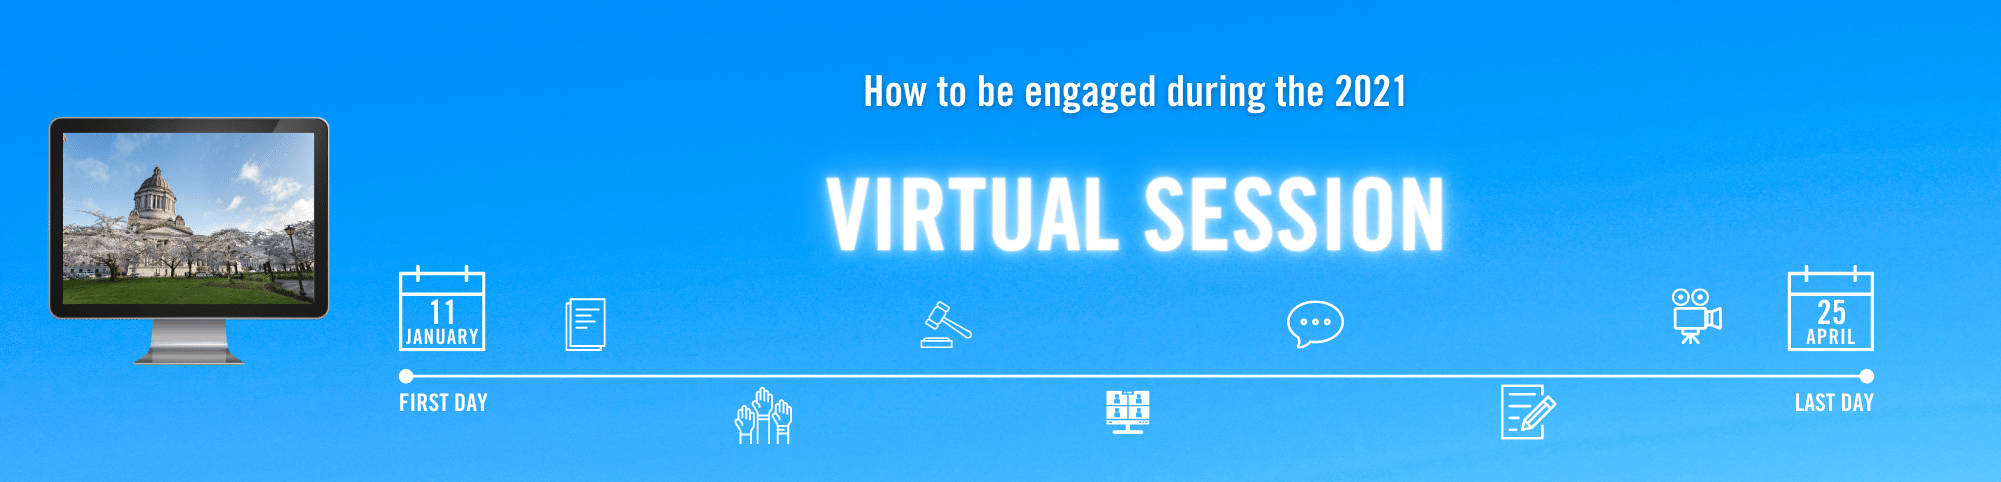 The virtual session guide webpage banner image